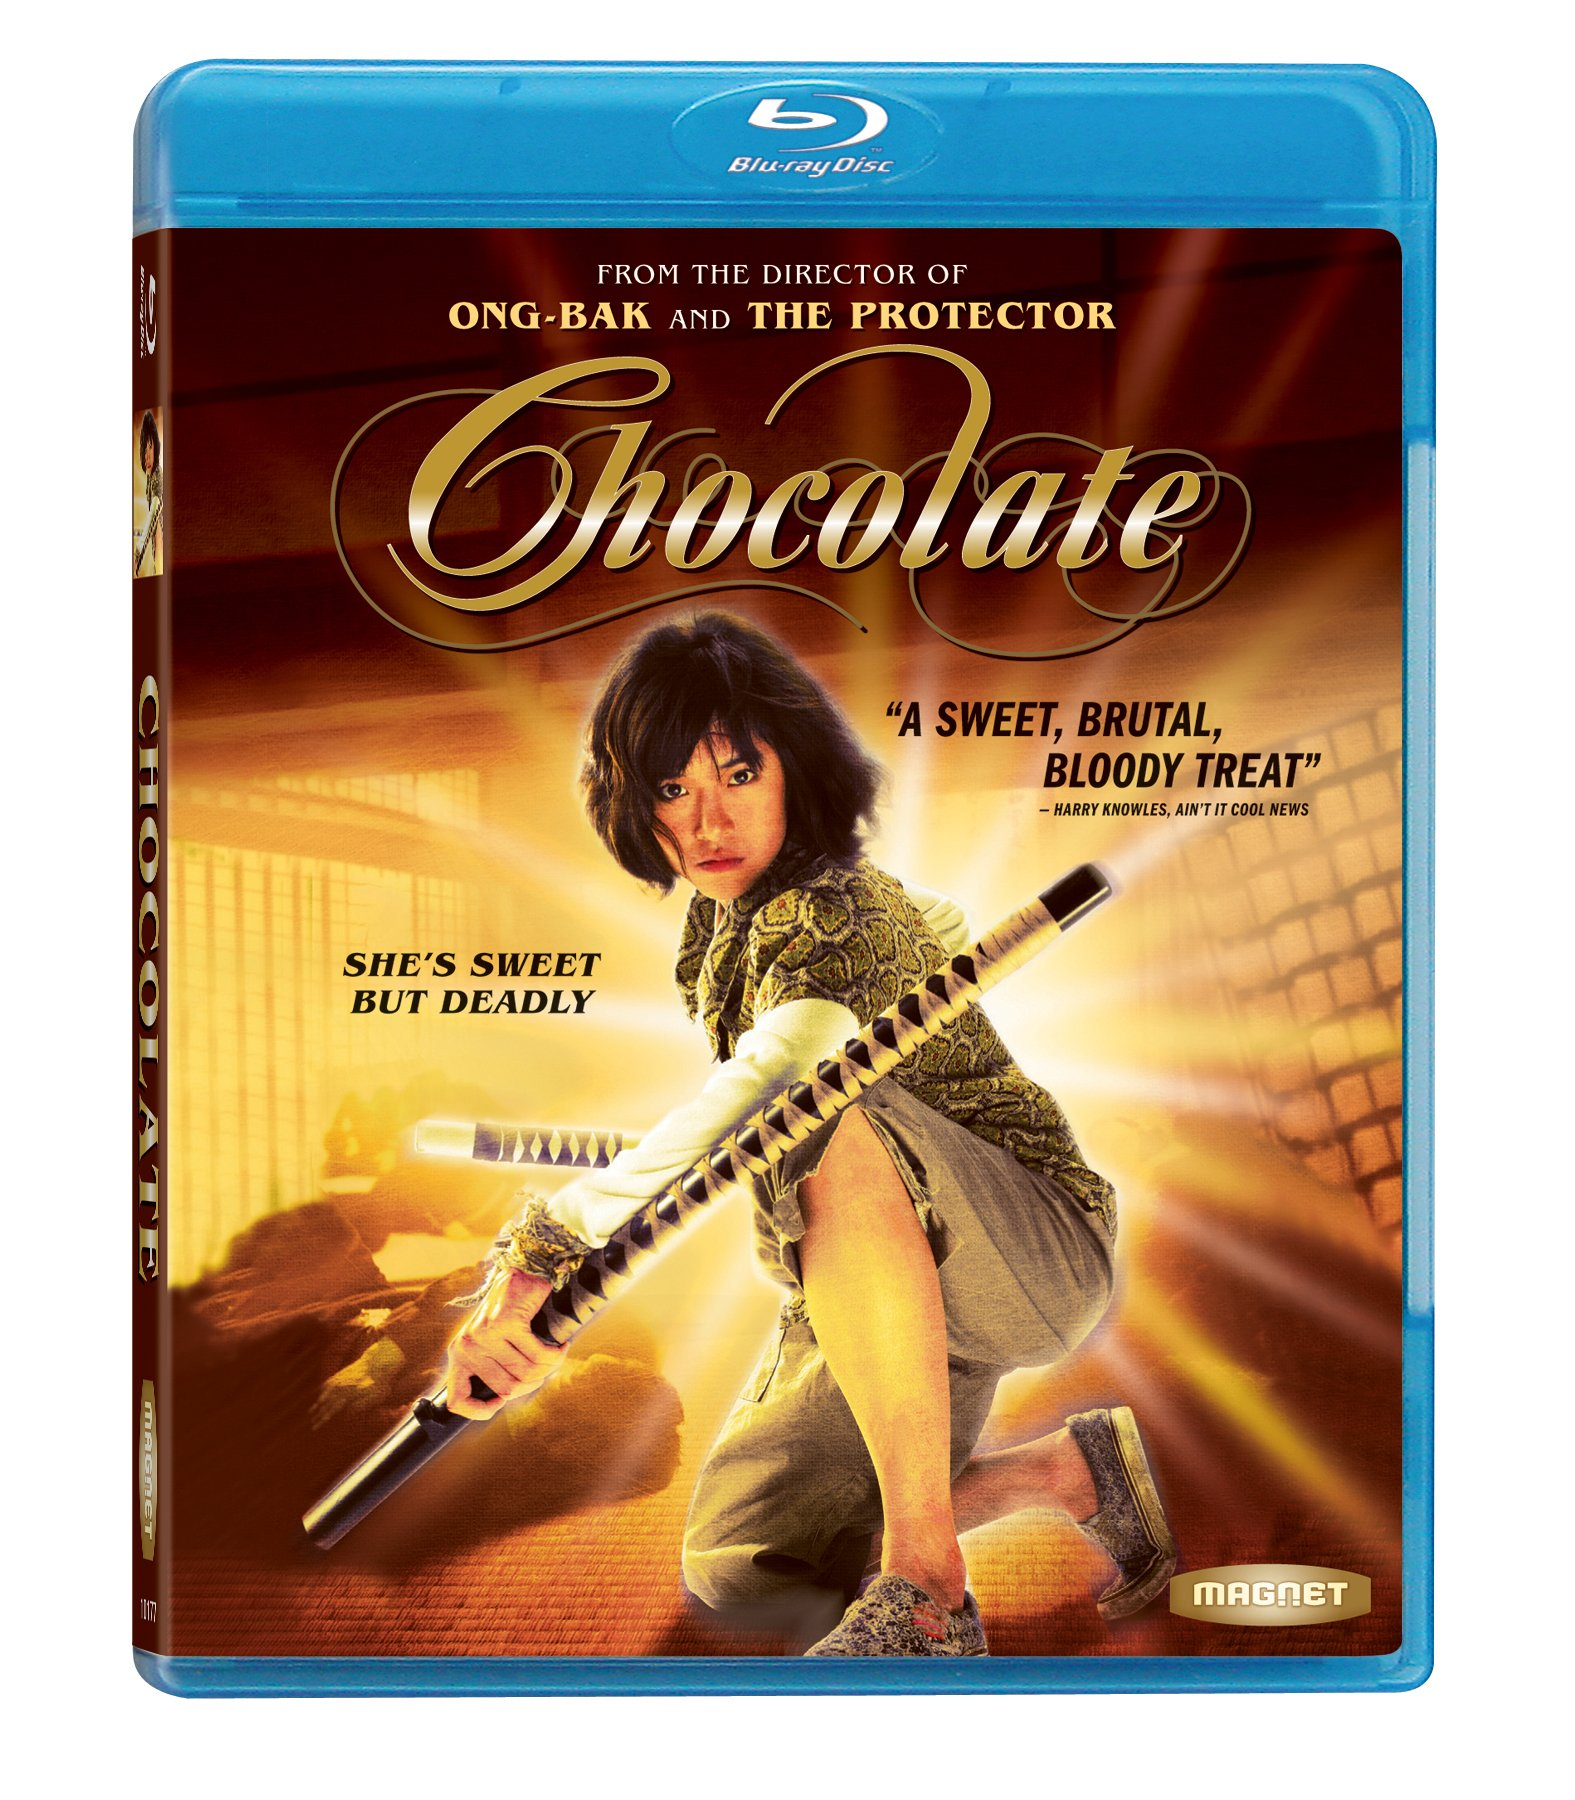 Blu-ray : Chocolate (, Widescreen, Dolby, AC-3, Dubbed)